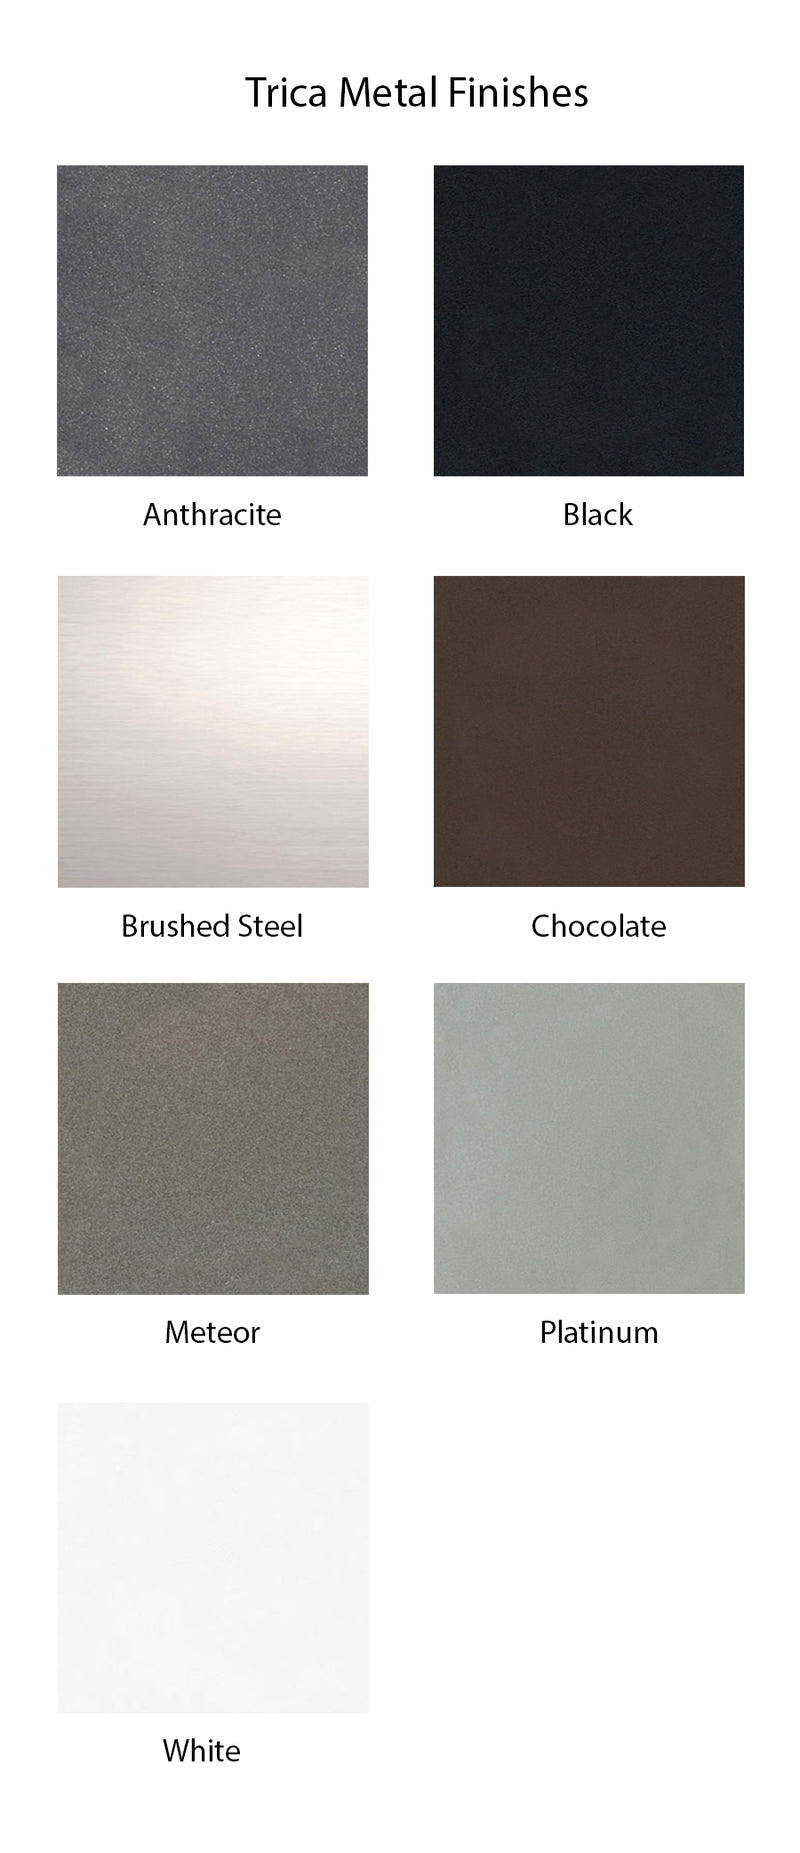 products/metal-finishes-trica_7b311903-8db3-4e94-9685-214118c890bc.jpg